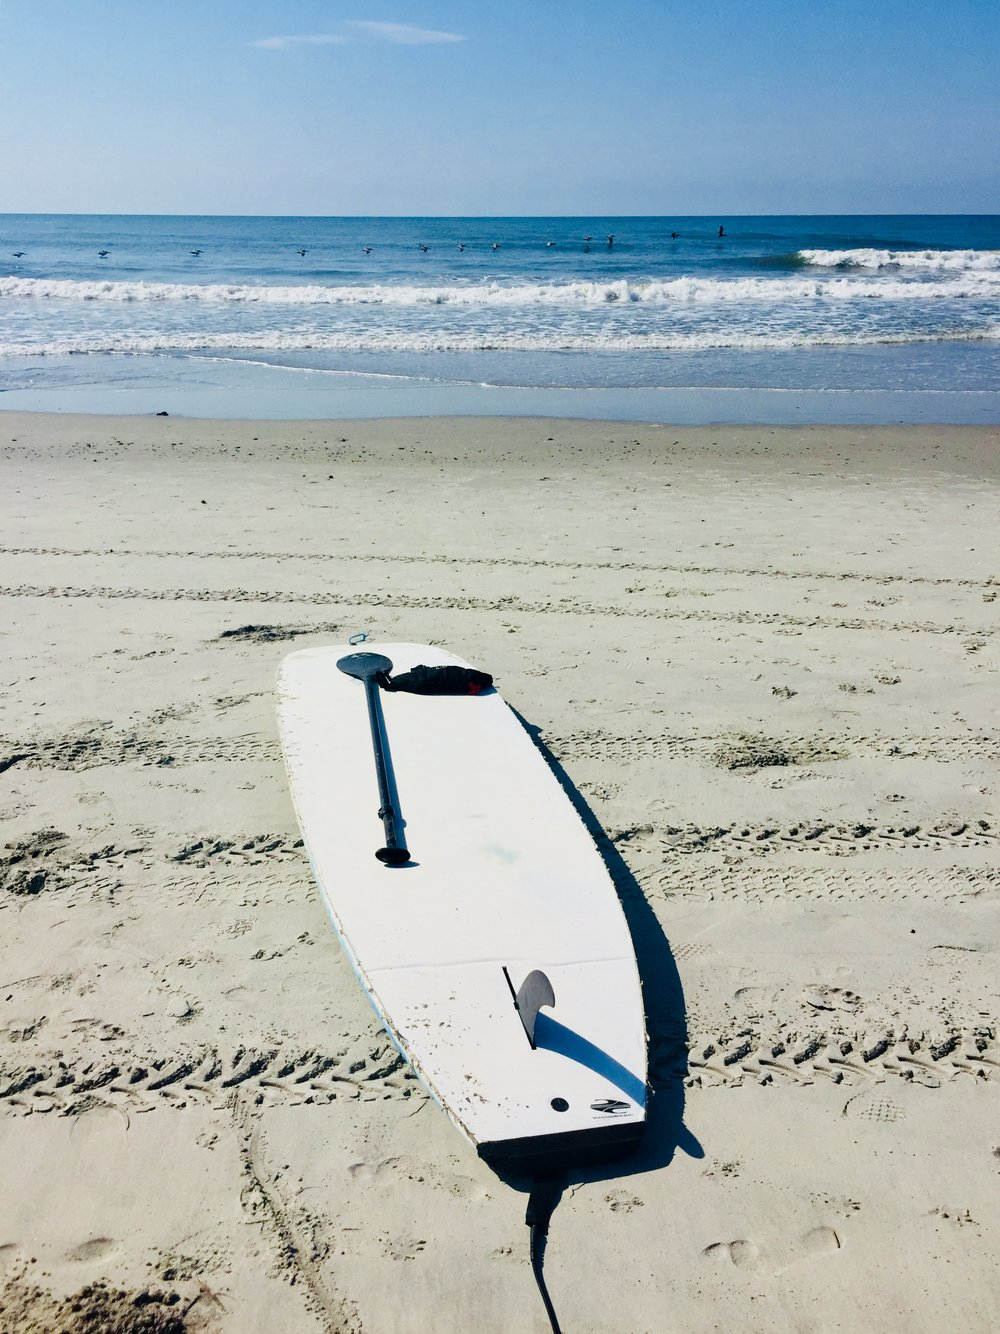 Paddle board beach view